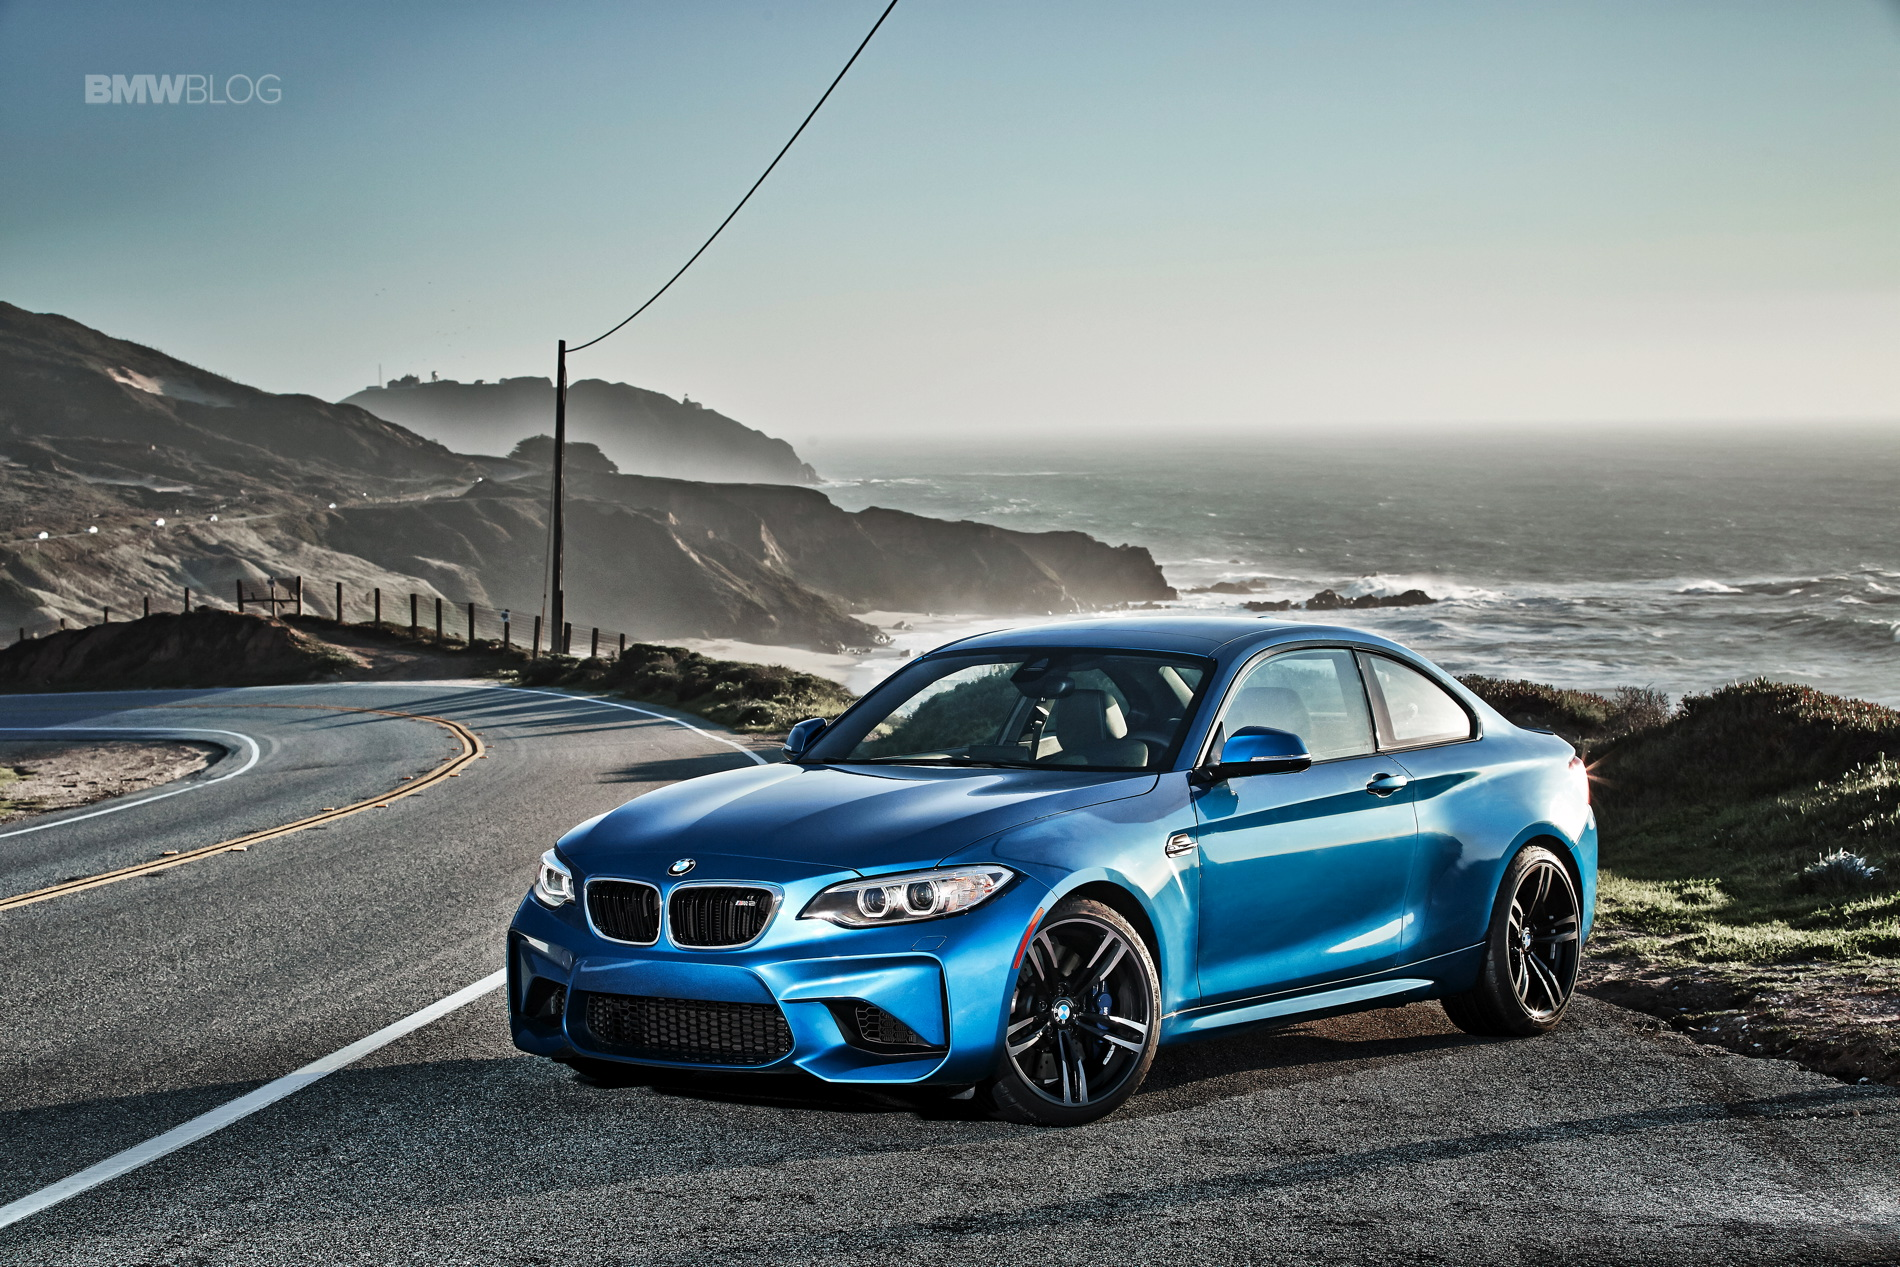 BMW M2 high quality wallpapers 201